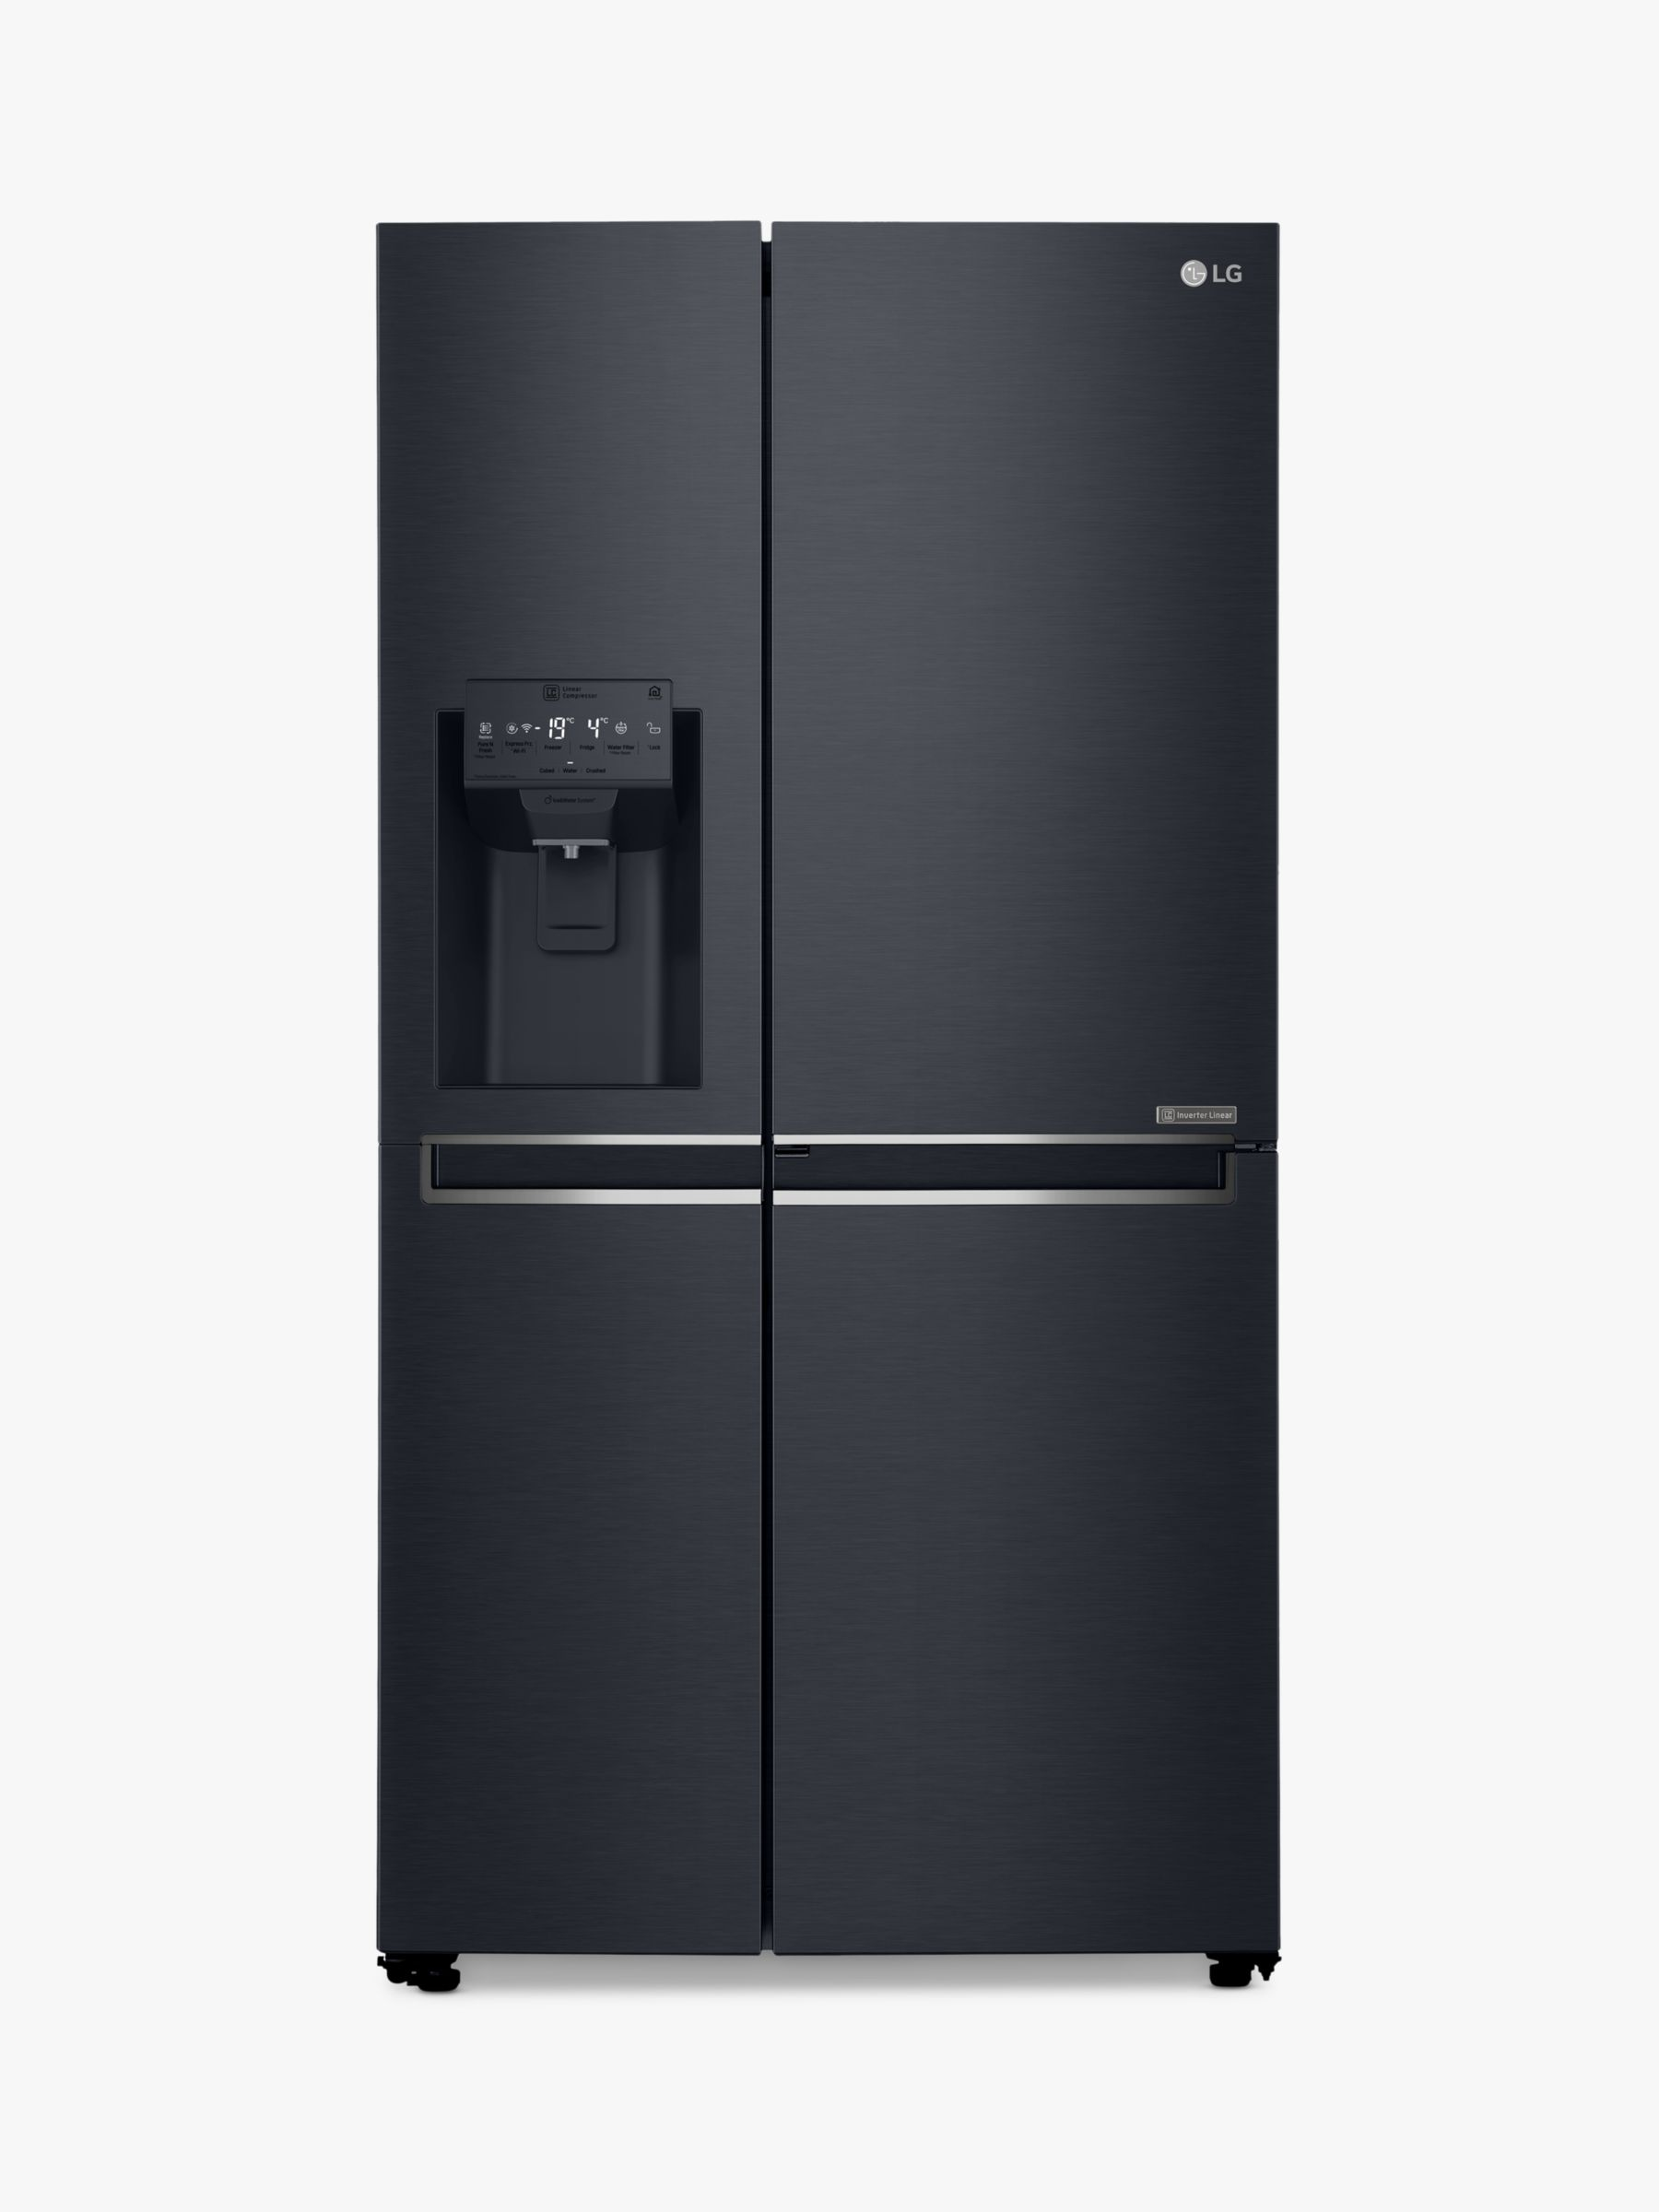 LG LG GSL760MCXV American Style Fridge Freezer, A+ Energy Rating, 91.2cm Wide, Plumbed Water and Ice Dispenser, Matte Black